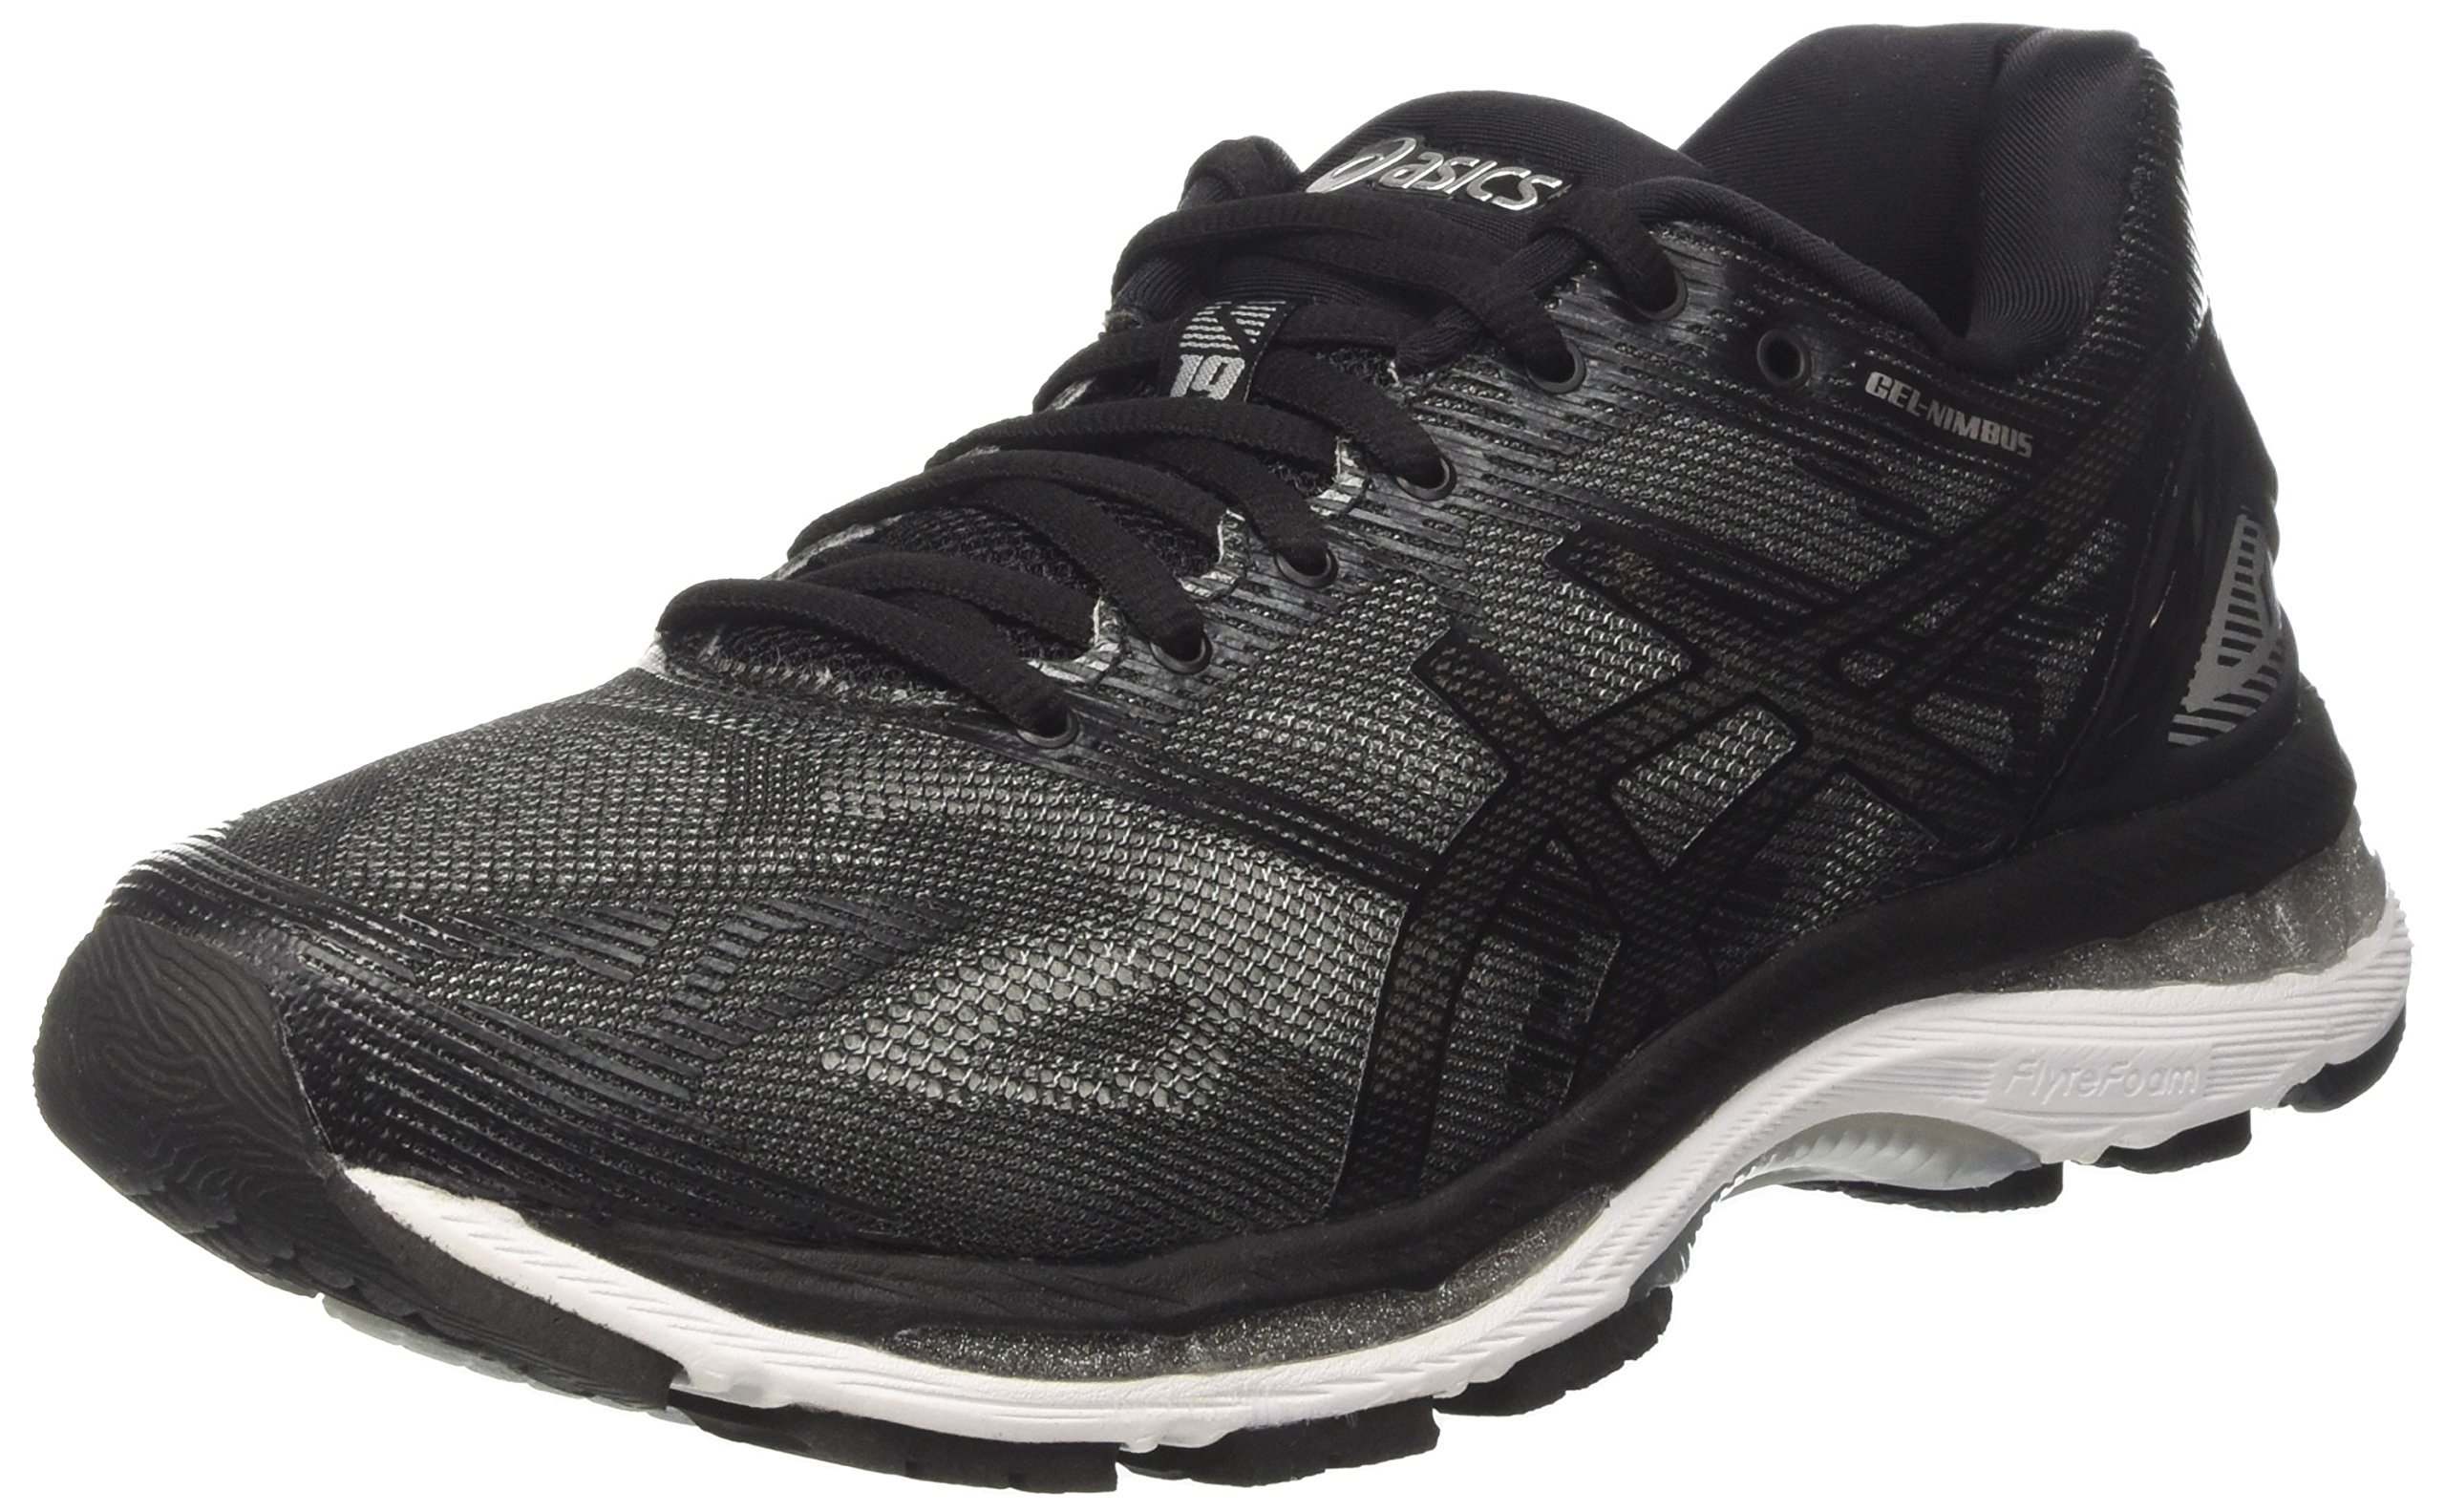 online store b415e 9ade9 ASICS Gel-Nimbus 19 Mens Running Trainers T700N Sneakers Shoes (UK 7 US 8  EU 41.5, Black Onyx Silver 9099)